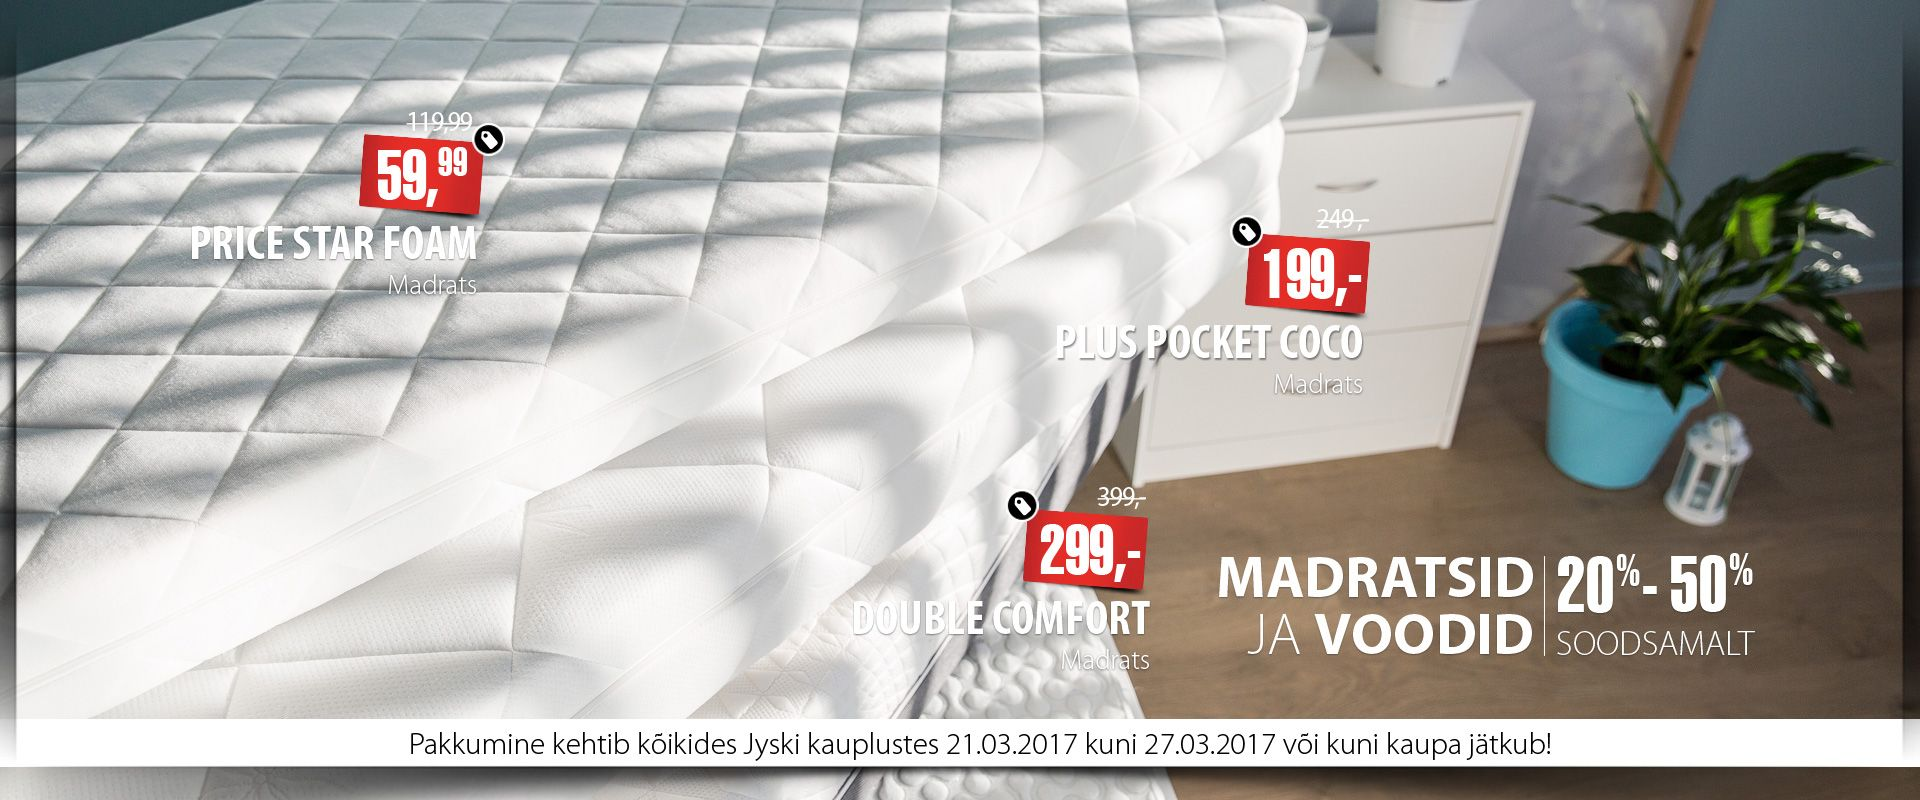 MATTRESSES_MARCH_IV_21_03_27_03_2017_EE